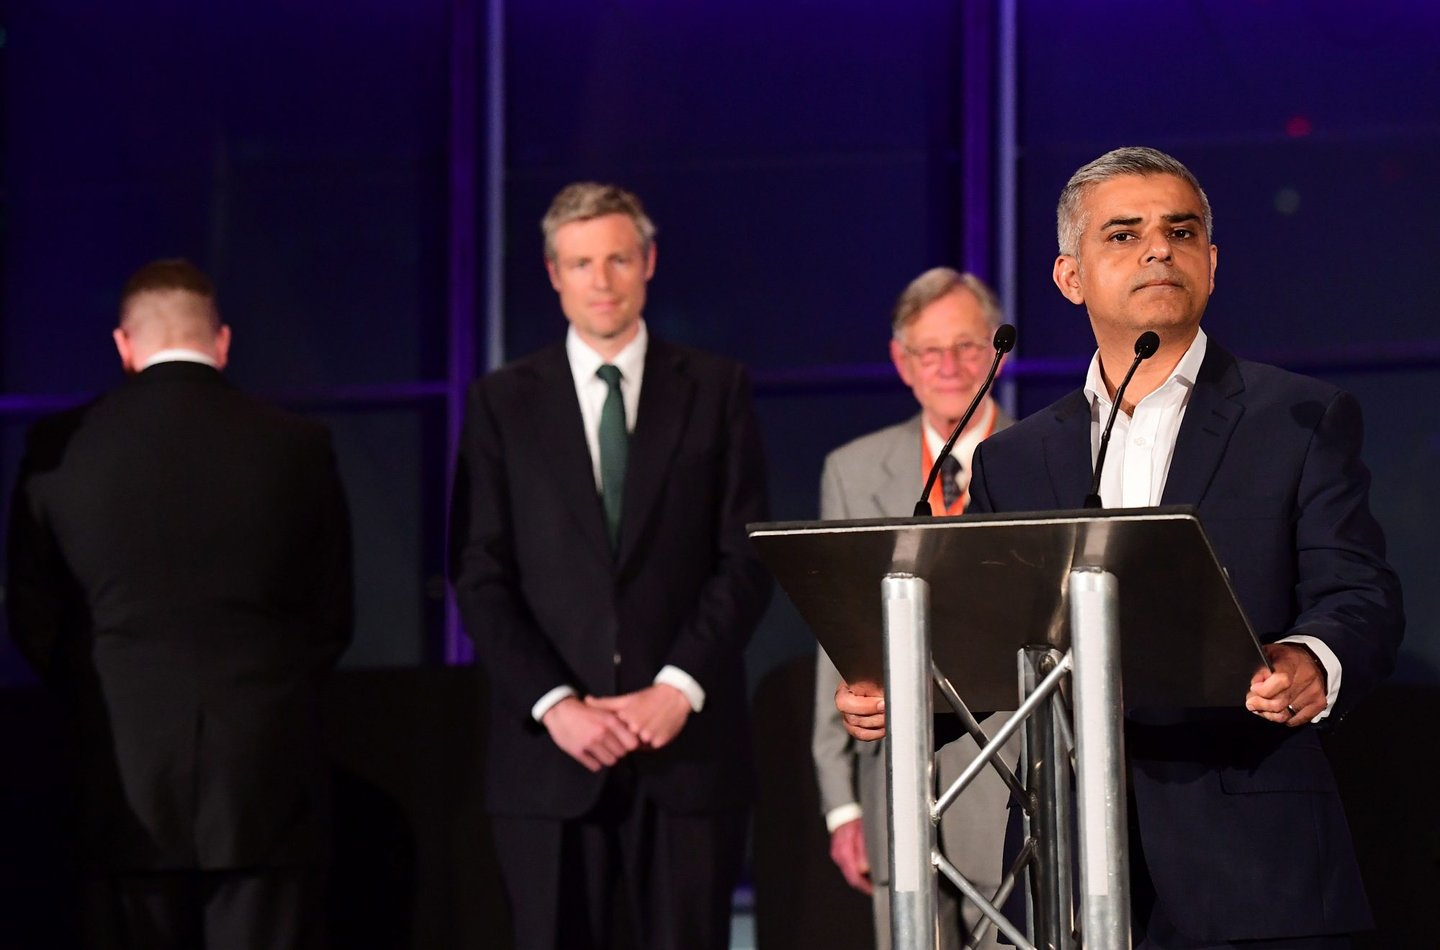 London's new Mayor Sadiq Khan (R) addresses the media as Paul Golding (Far L) the candidate for Britain First, turns his back during the address at City Hall in central London on May 7, 2016. London became the first EU capital with a Muslim mayor Friday as Sadiq Khan won the election that saw his opposition Labour party suffer nationwide setbacks. / AFP / LEON NEAL (Photo credit should read LEON NEAL/AFP/Getty Images)